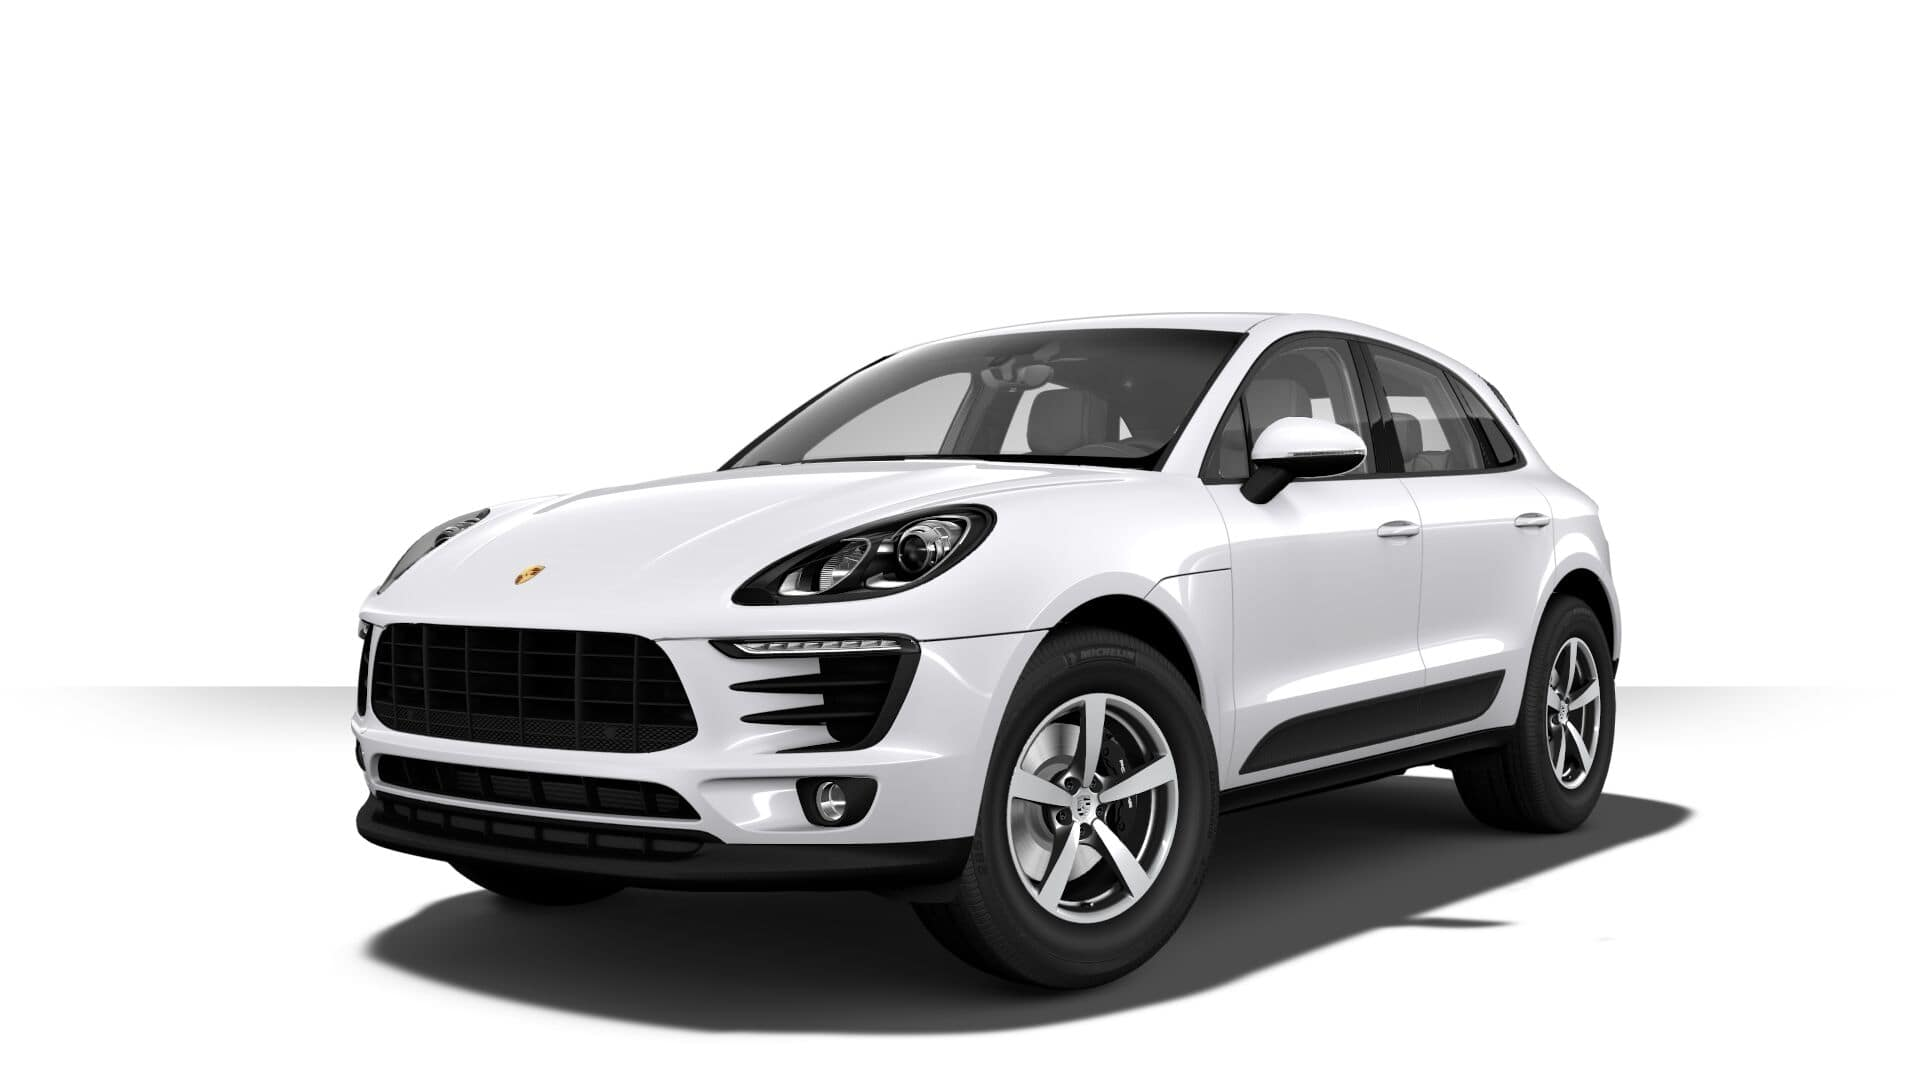 Porsche Macan Carrara White Metallic